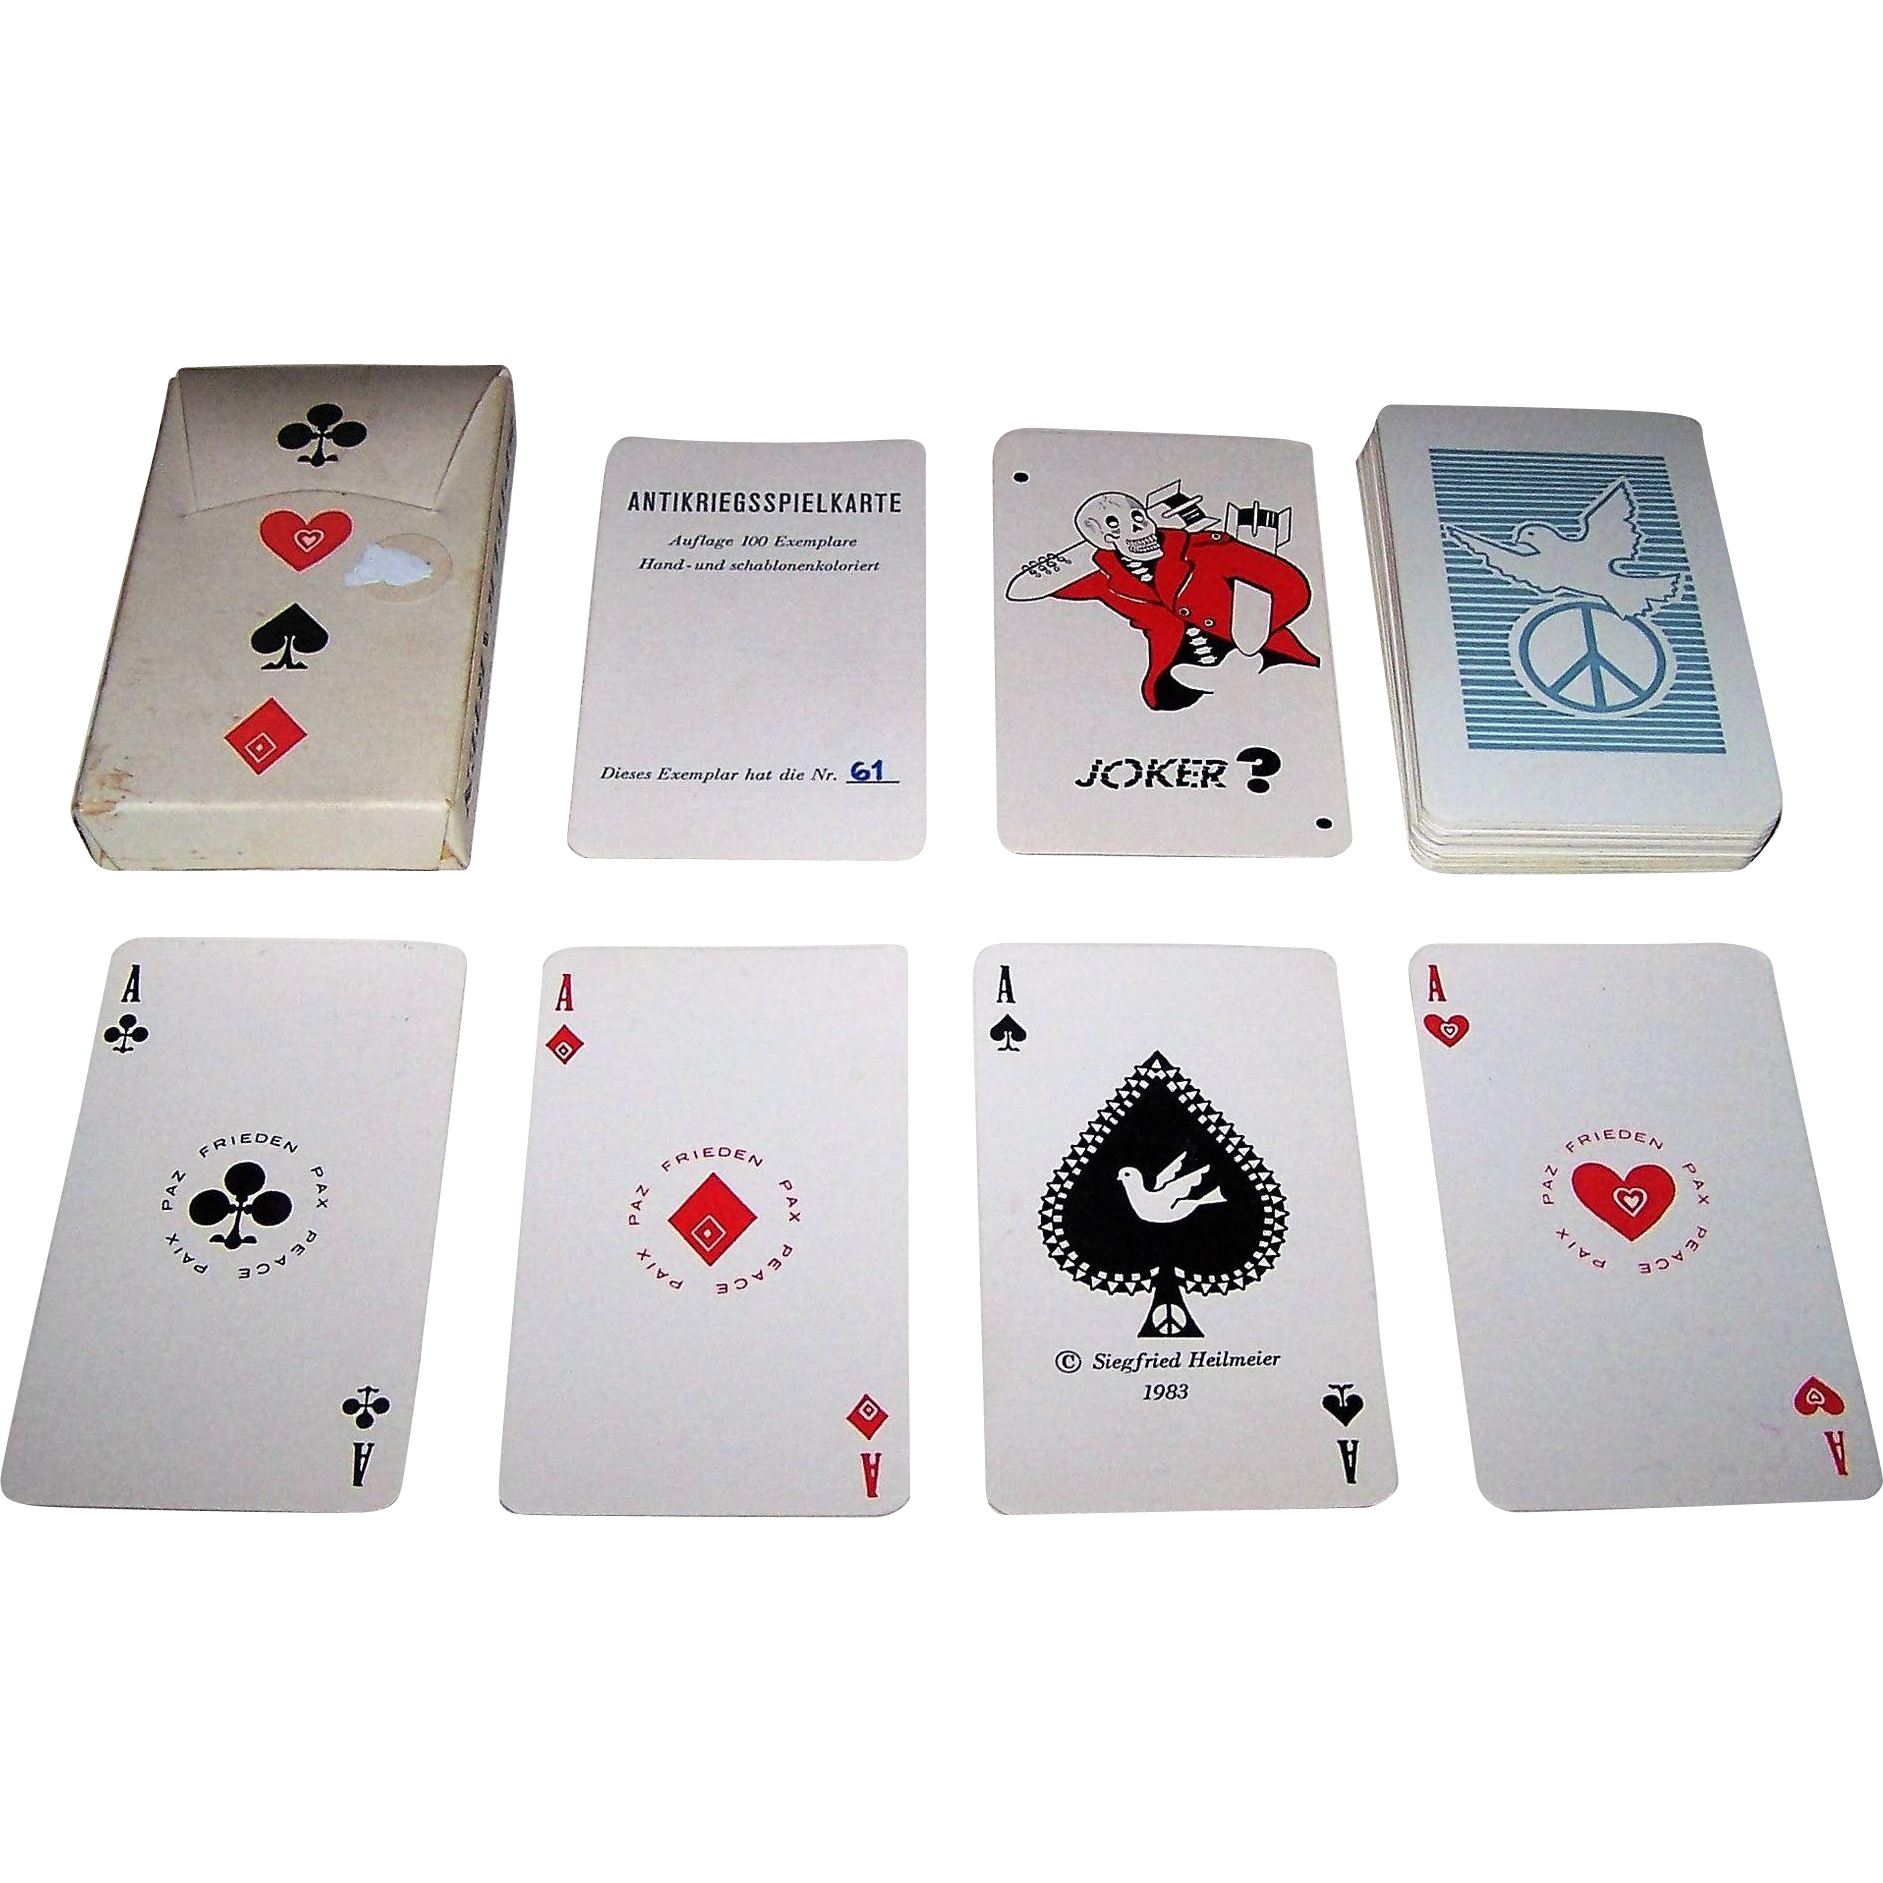 "Siegfried Heilmeier ""Antikriegsspielkarte"" (""Antiwar Playing Cards"") Skat Playing Cards, Hand Colored, Ltd. Ed. (61/100), c.1983"